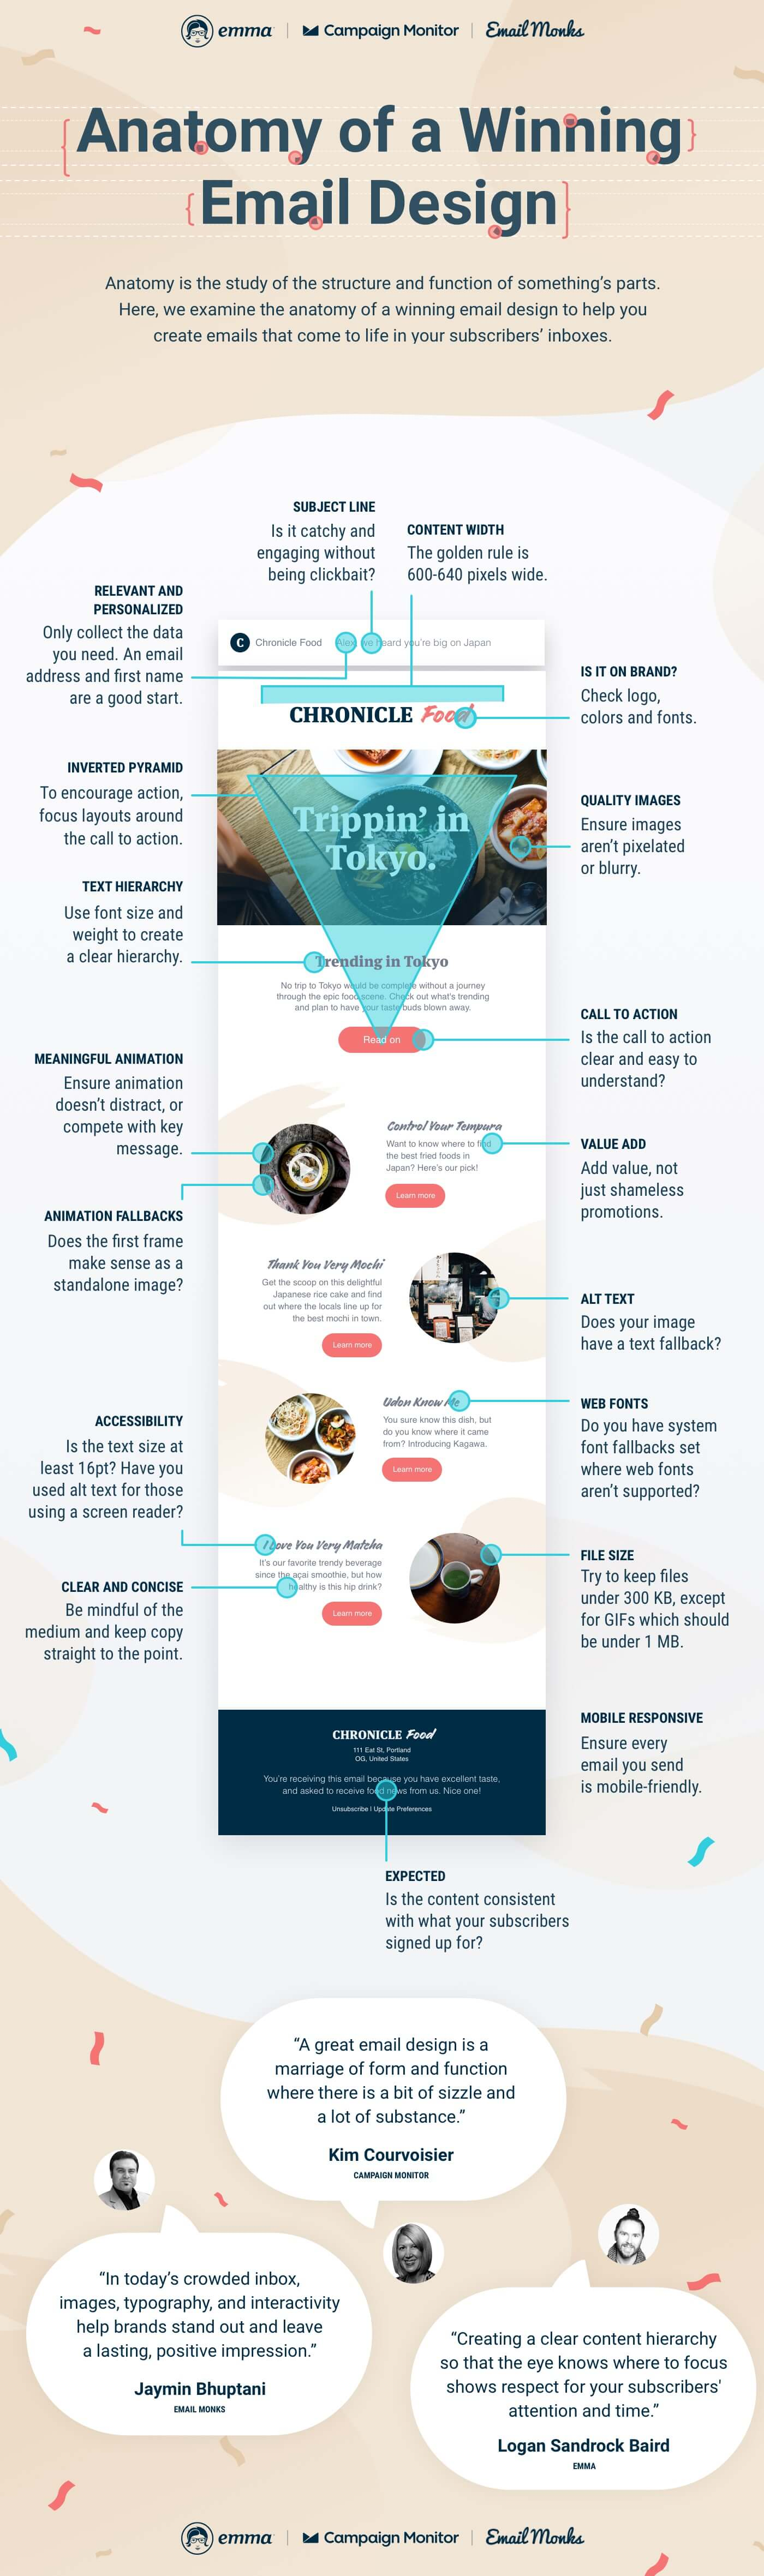 Winning Email Design Infographic